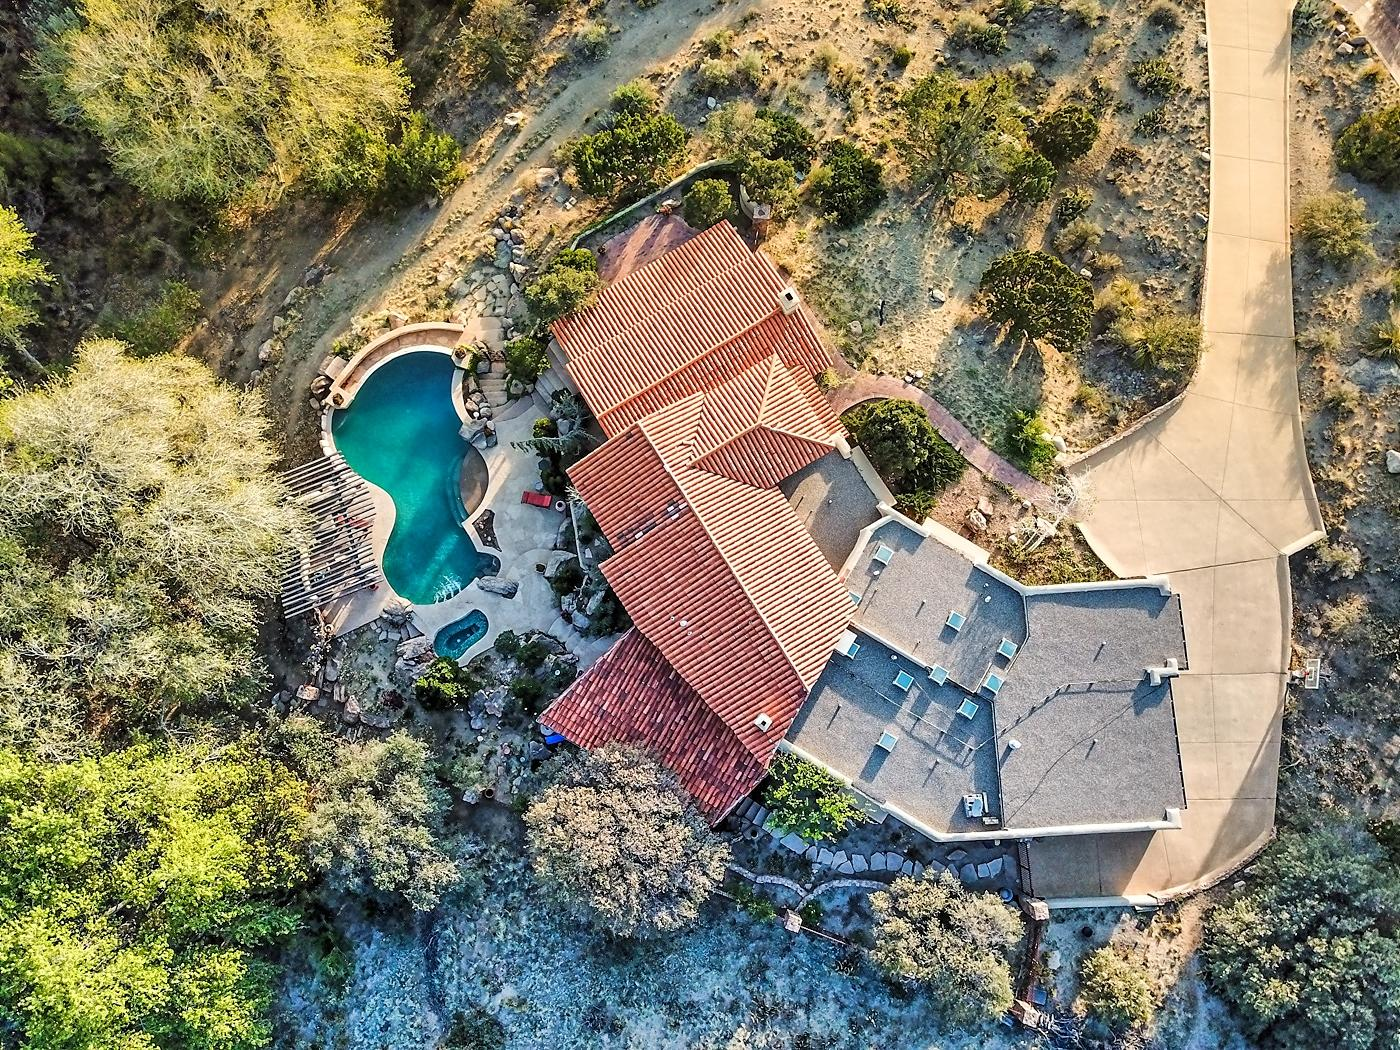 254 SPRING CREEK PLACE, ALBUQUERQUE, NM 87122